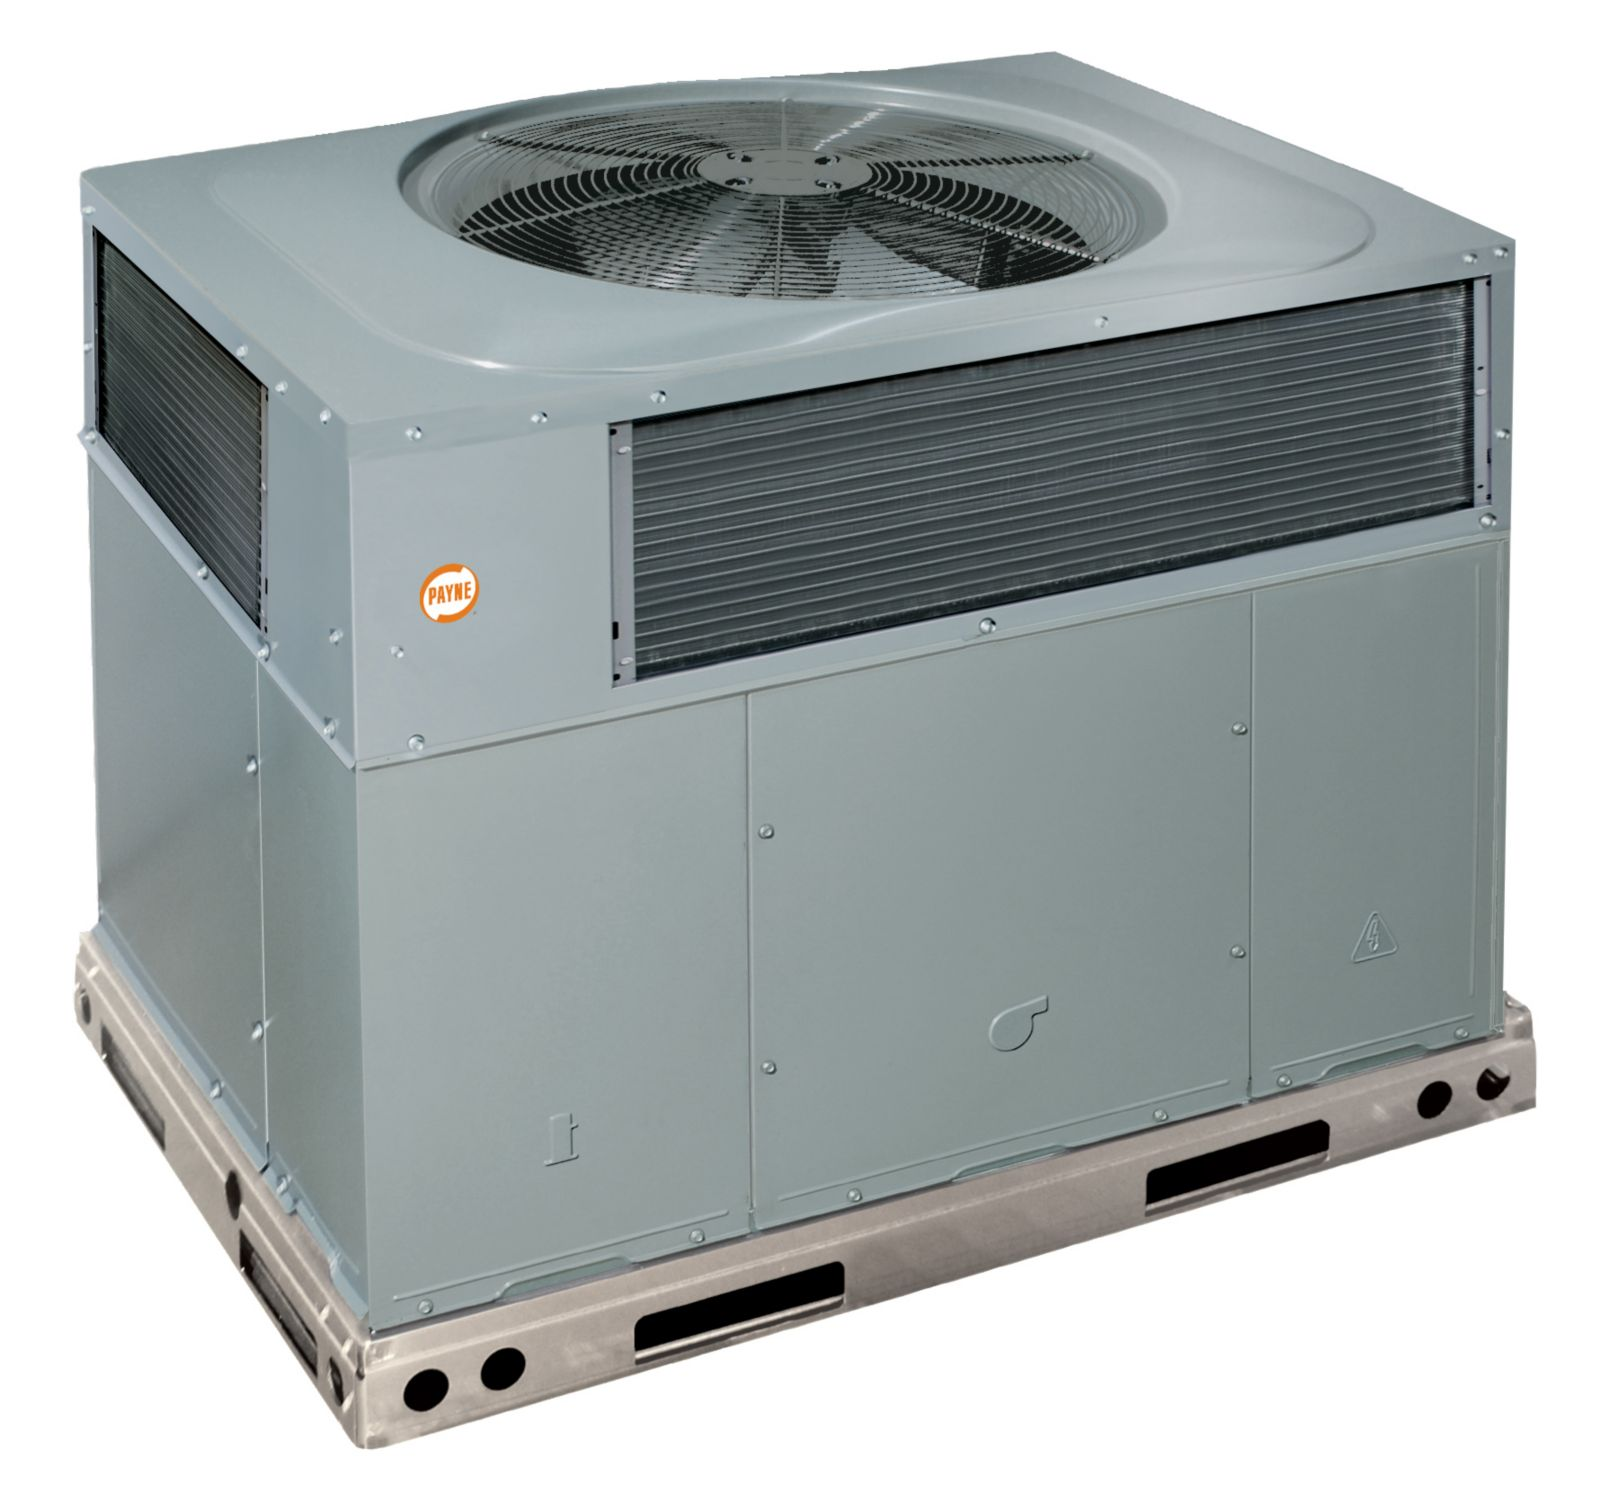 Heat And Cooling Units Payne Packaged Air Conditioner 35 Ton 14 Seer Carrier Hvac